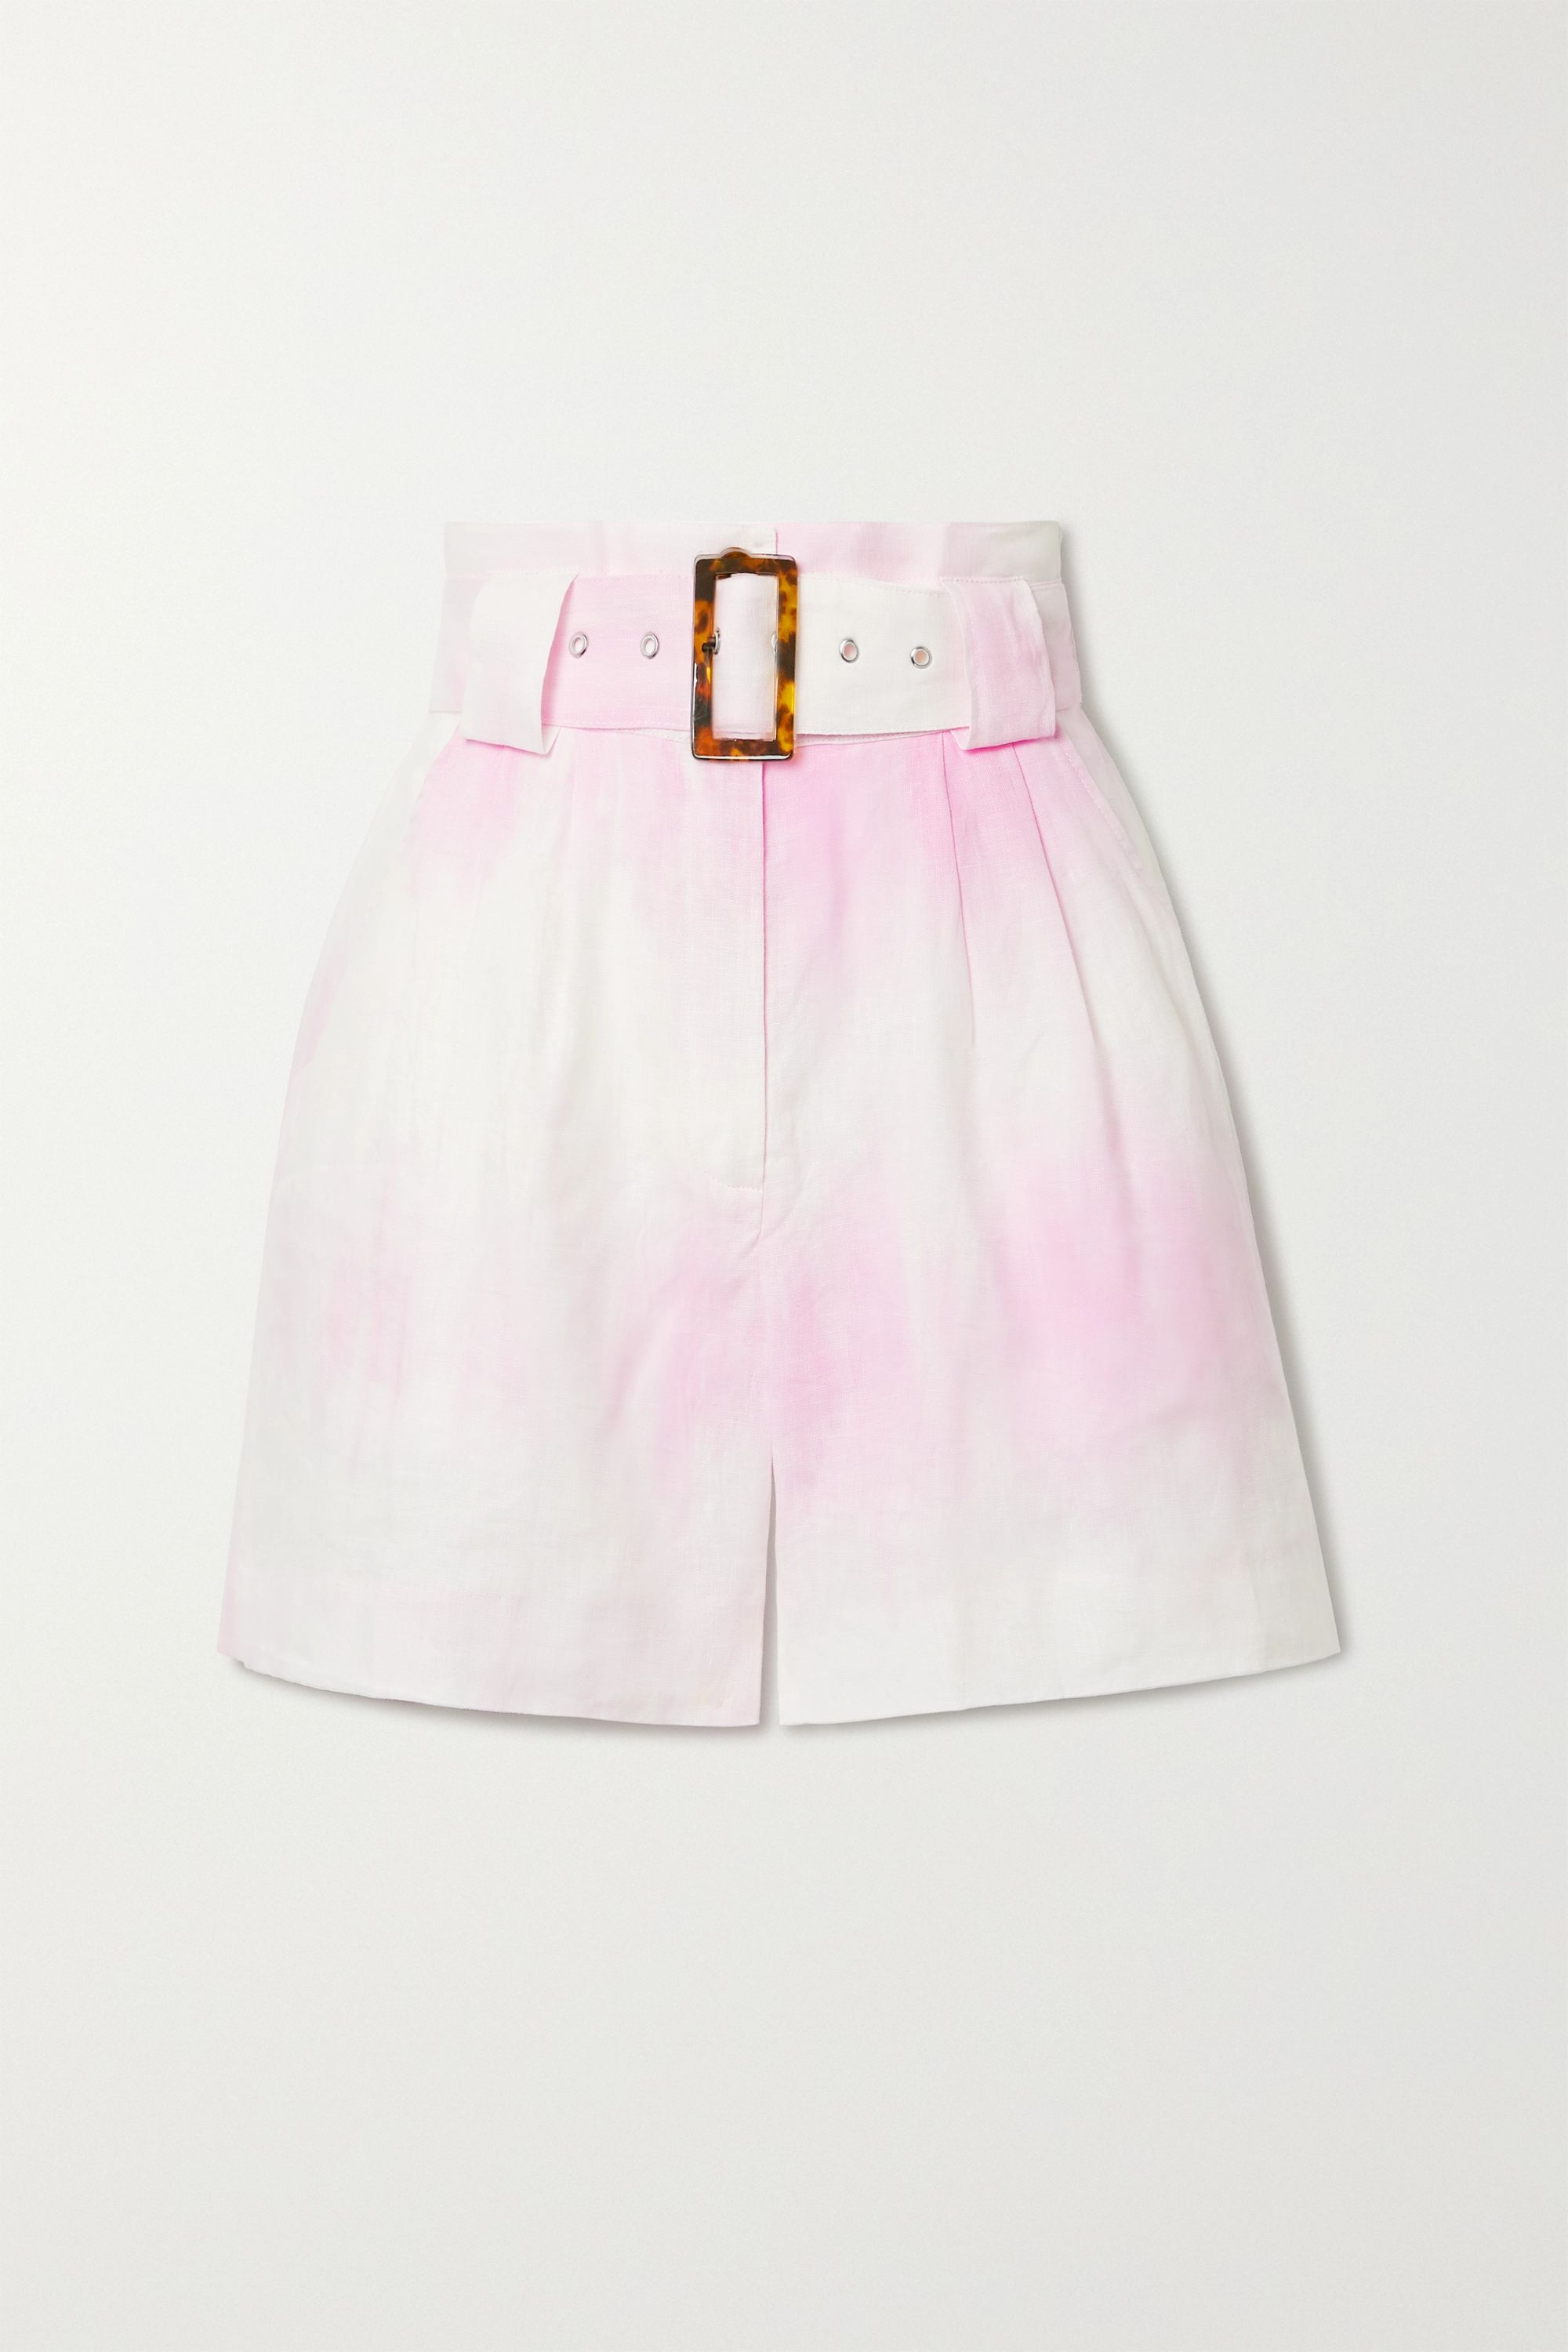 Solid & Striped Belted tie-dyed linen shorts